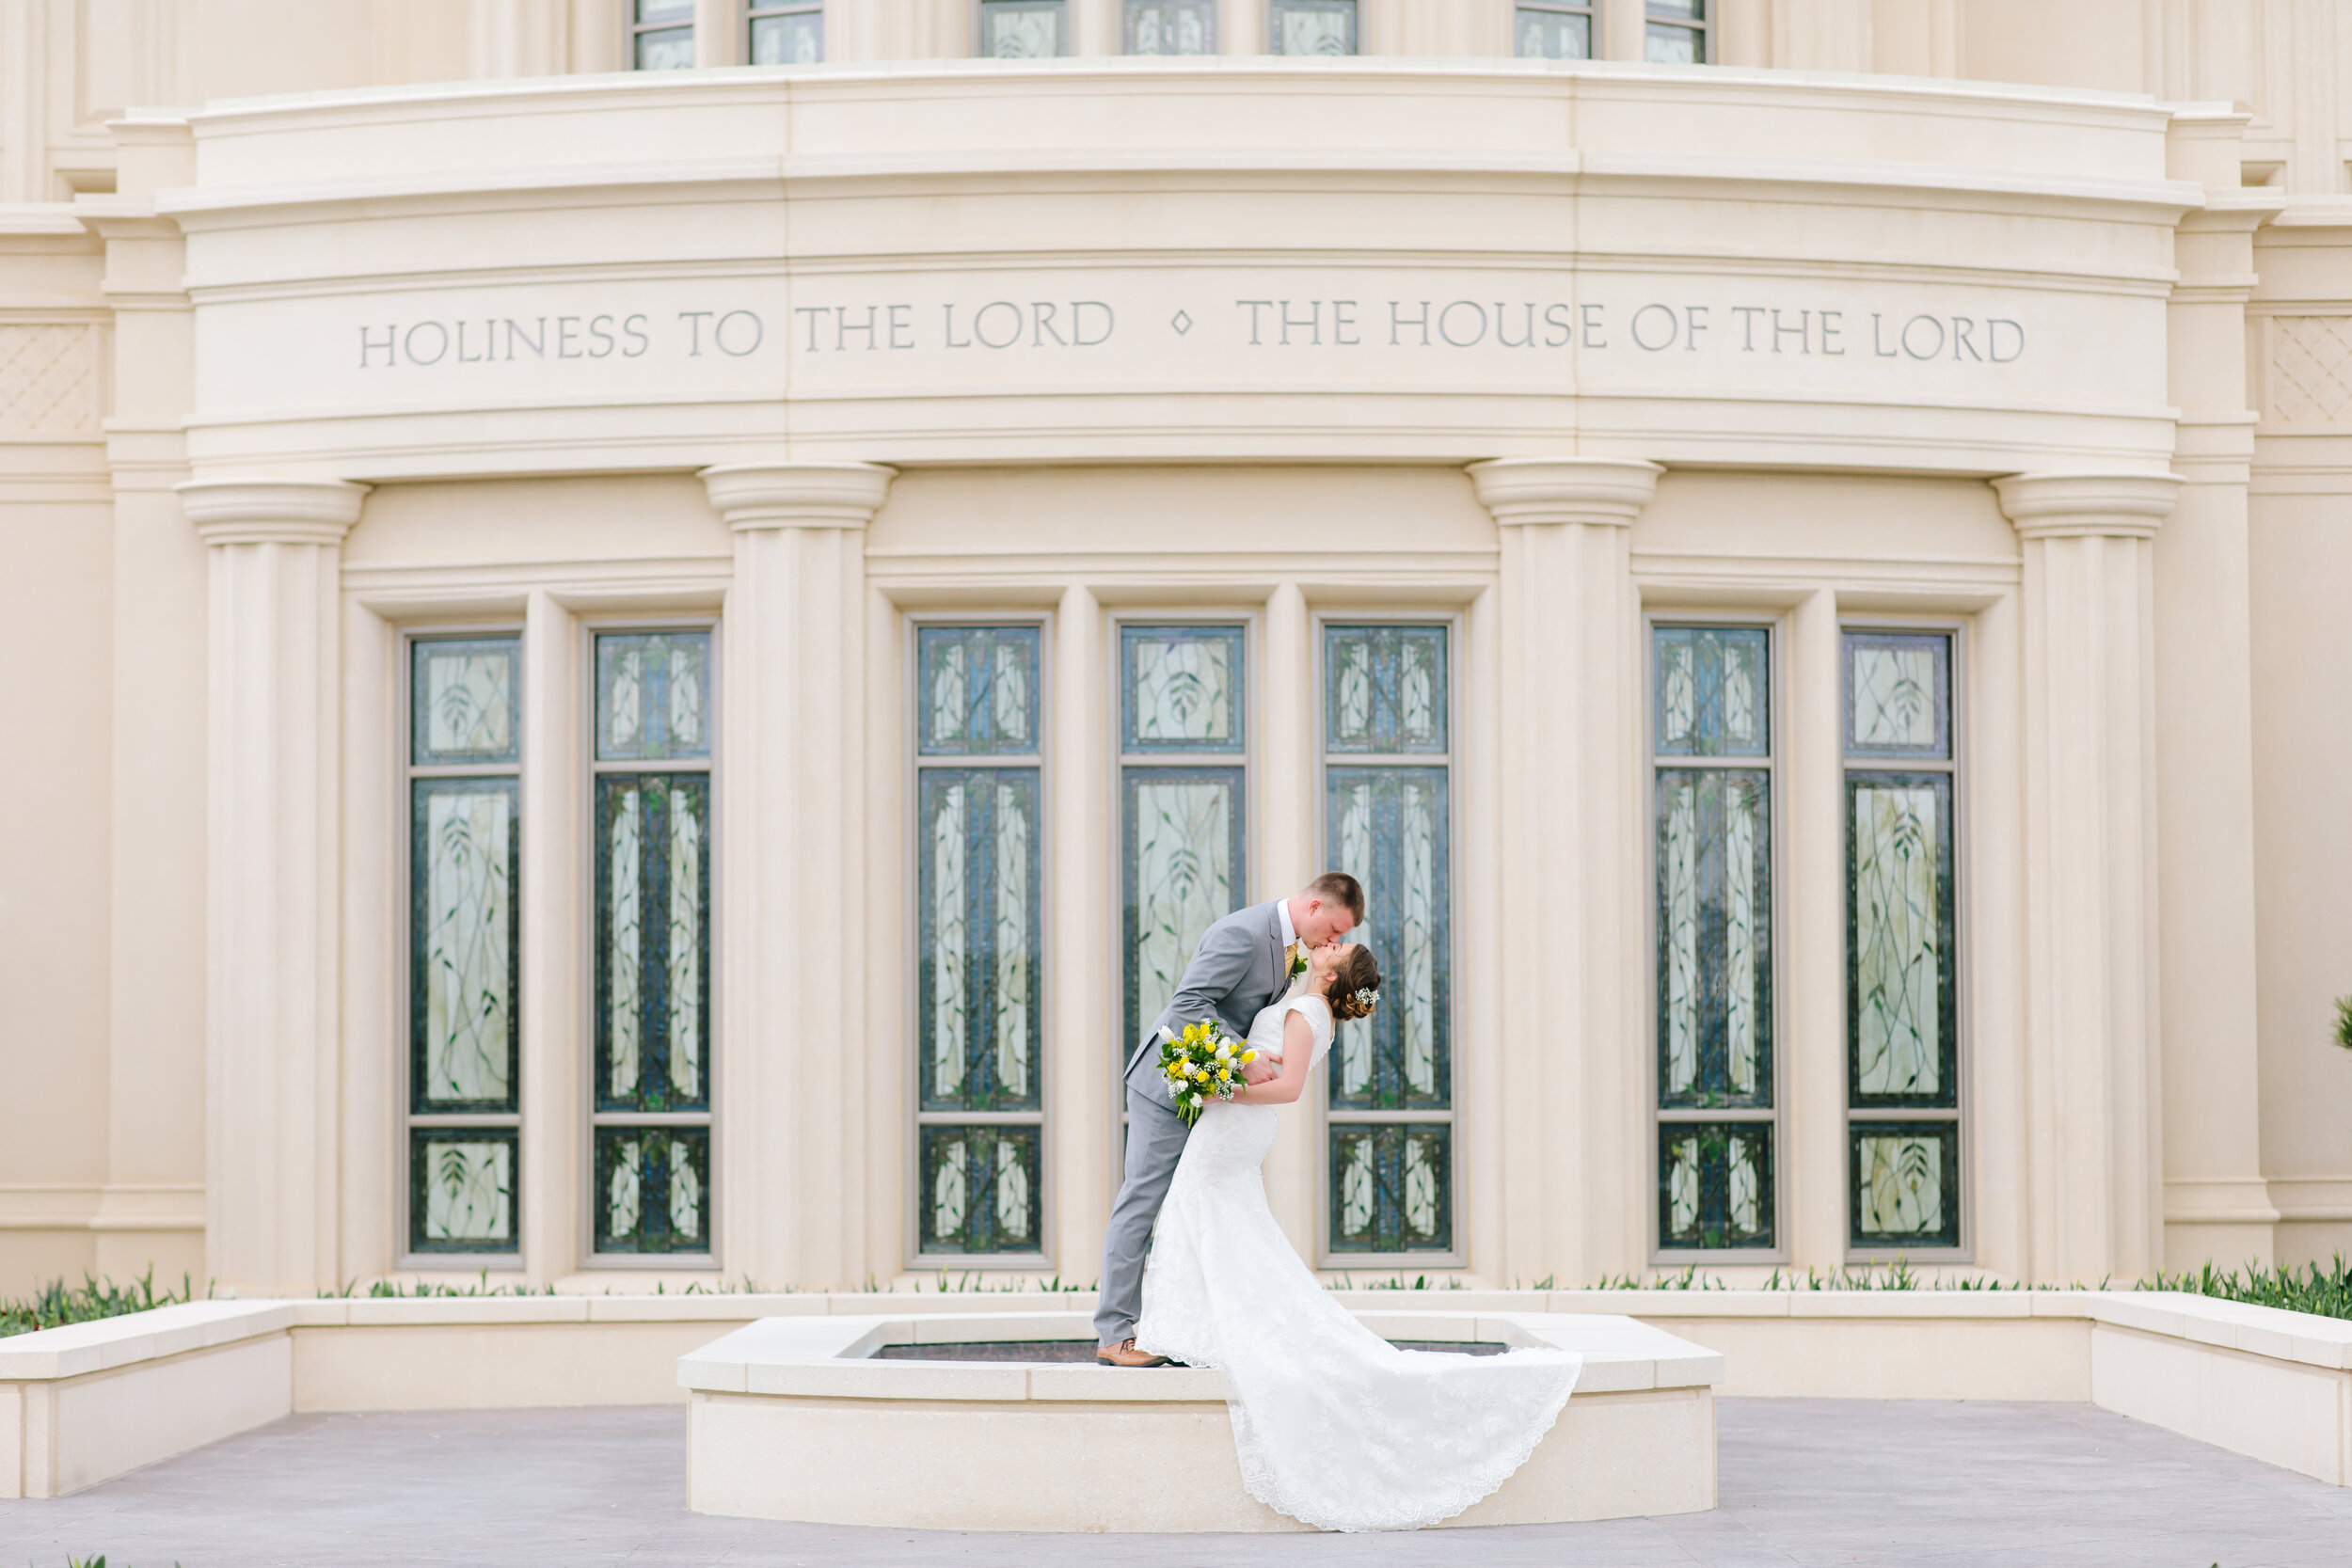 standing kissing dip pose inspiration wedding day picture inspiration lds temple payson temple lds couple mormon bride modest wedding dress inspiration temple ground photo shoot utah photographer couple goals payson utah temple wedding picture inspiration lds #eternalbuddies #weddingsession #weddinginspo #ldswedding #ldsbride #couplegoals #paysontemple #temple #profressionalphotographer #utah #love